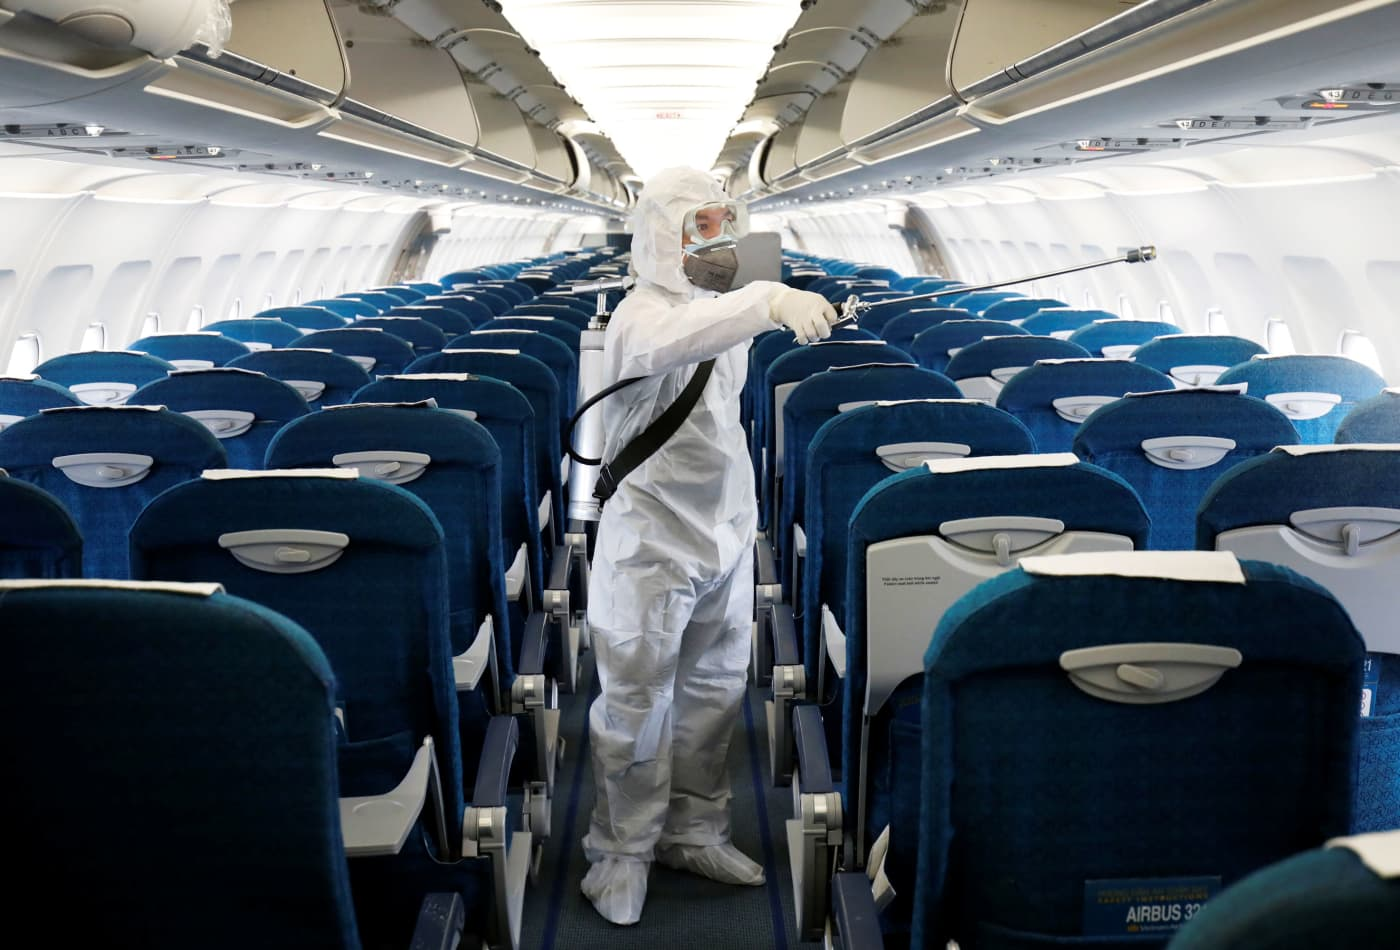 Coronavirus flight cancellations top 200,000, sending jet fuel prices to more than 2-year lows